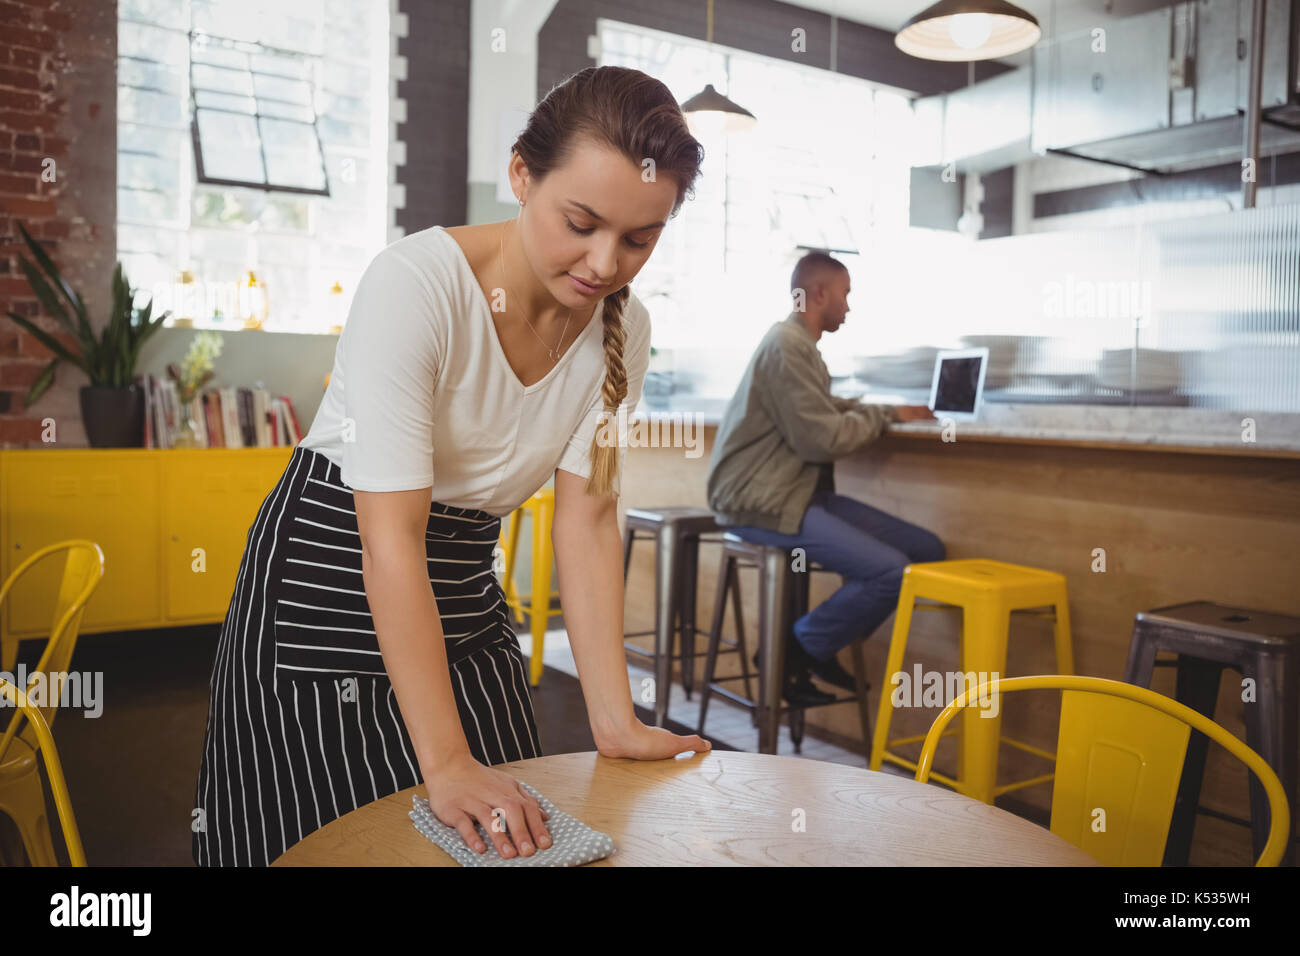 Young waitress cleaning table at cafe - Stock Image